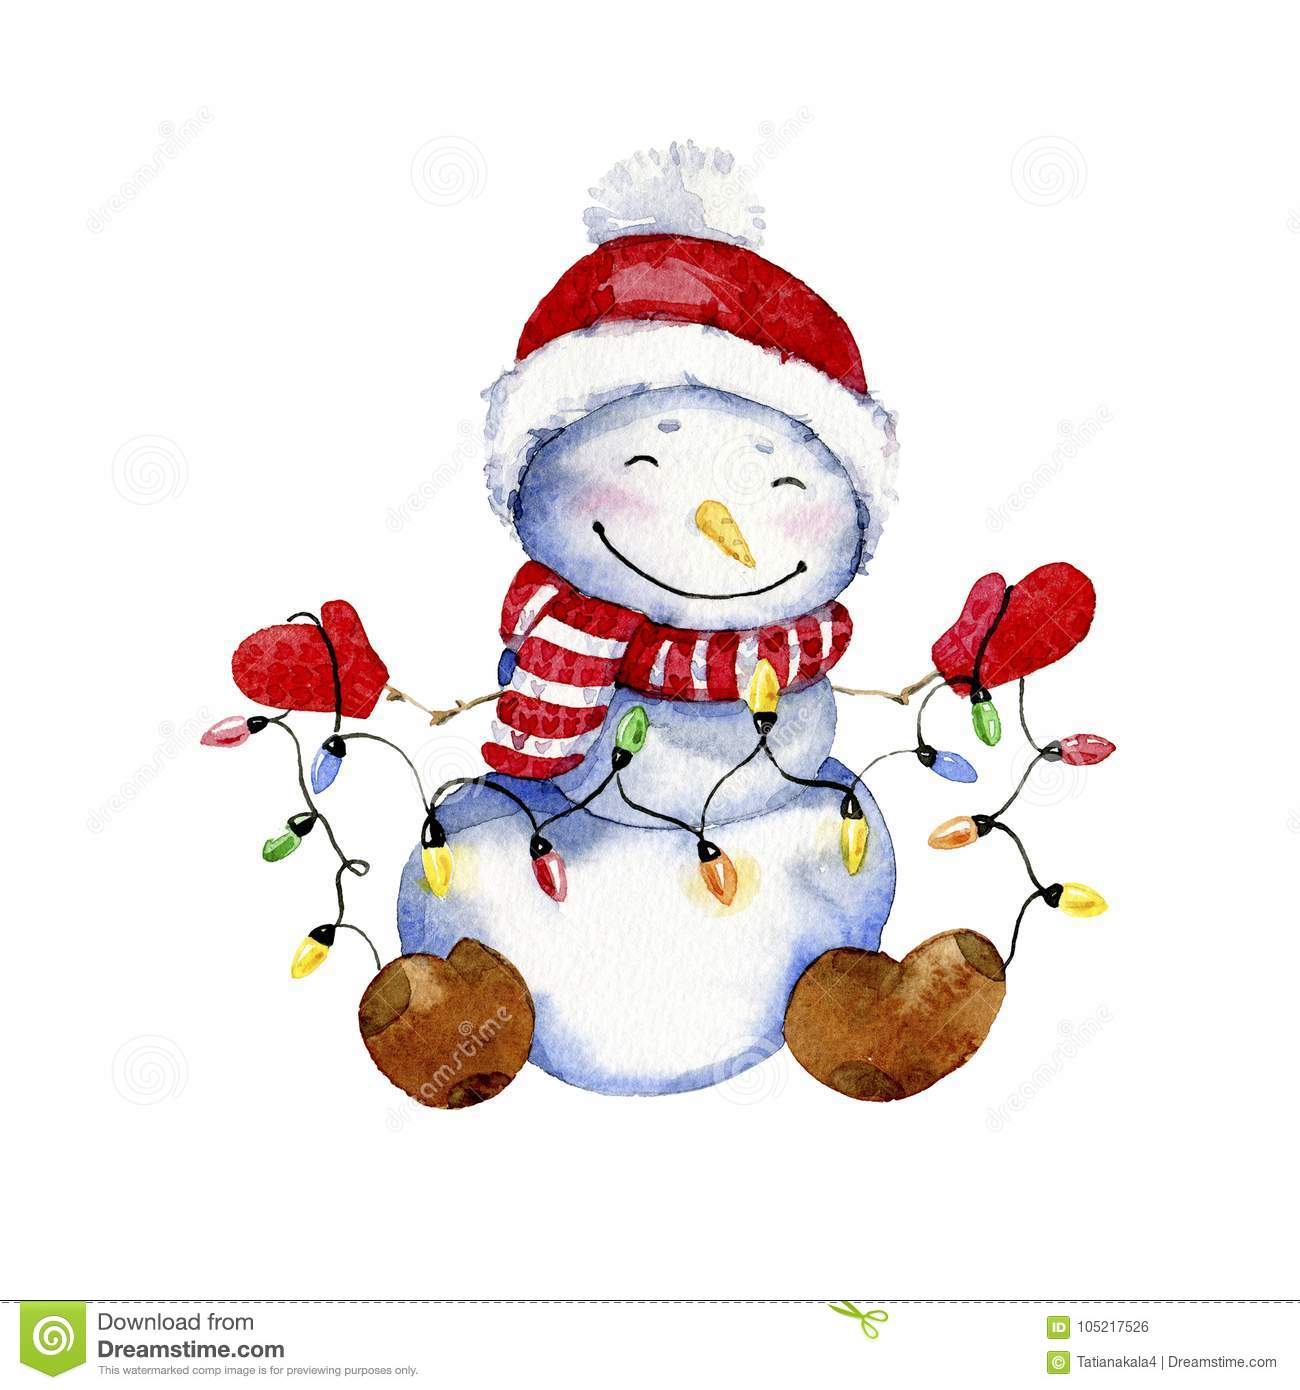 Watercolor Cartoon Illustration Smiling Snowman With Christmas